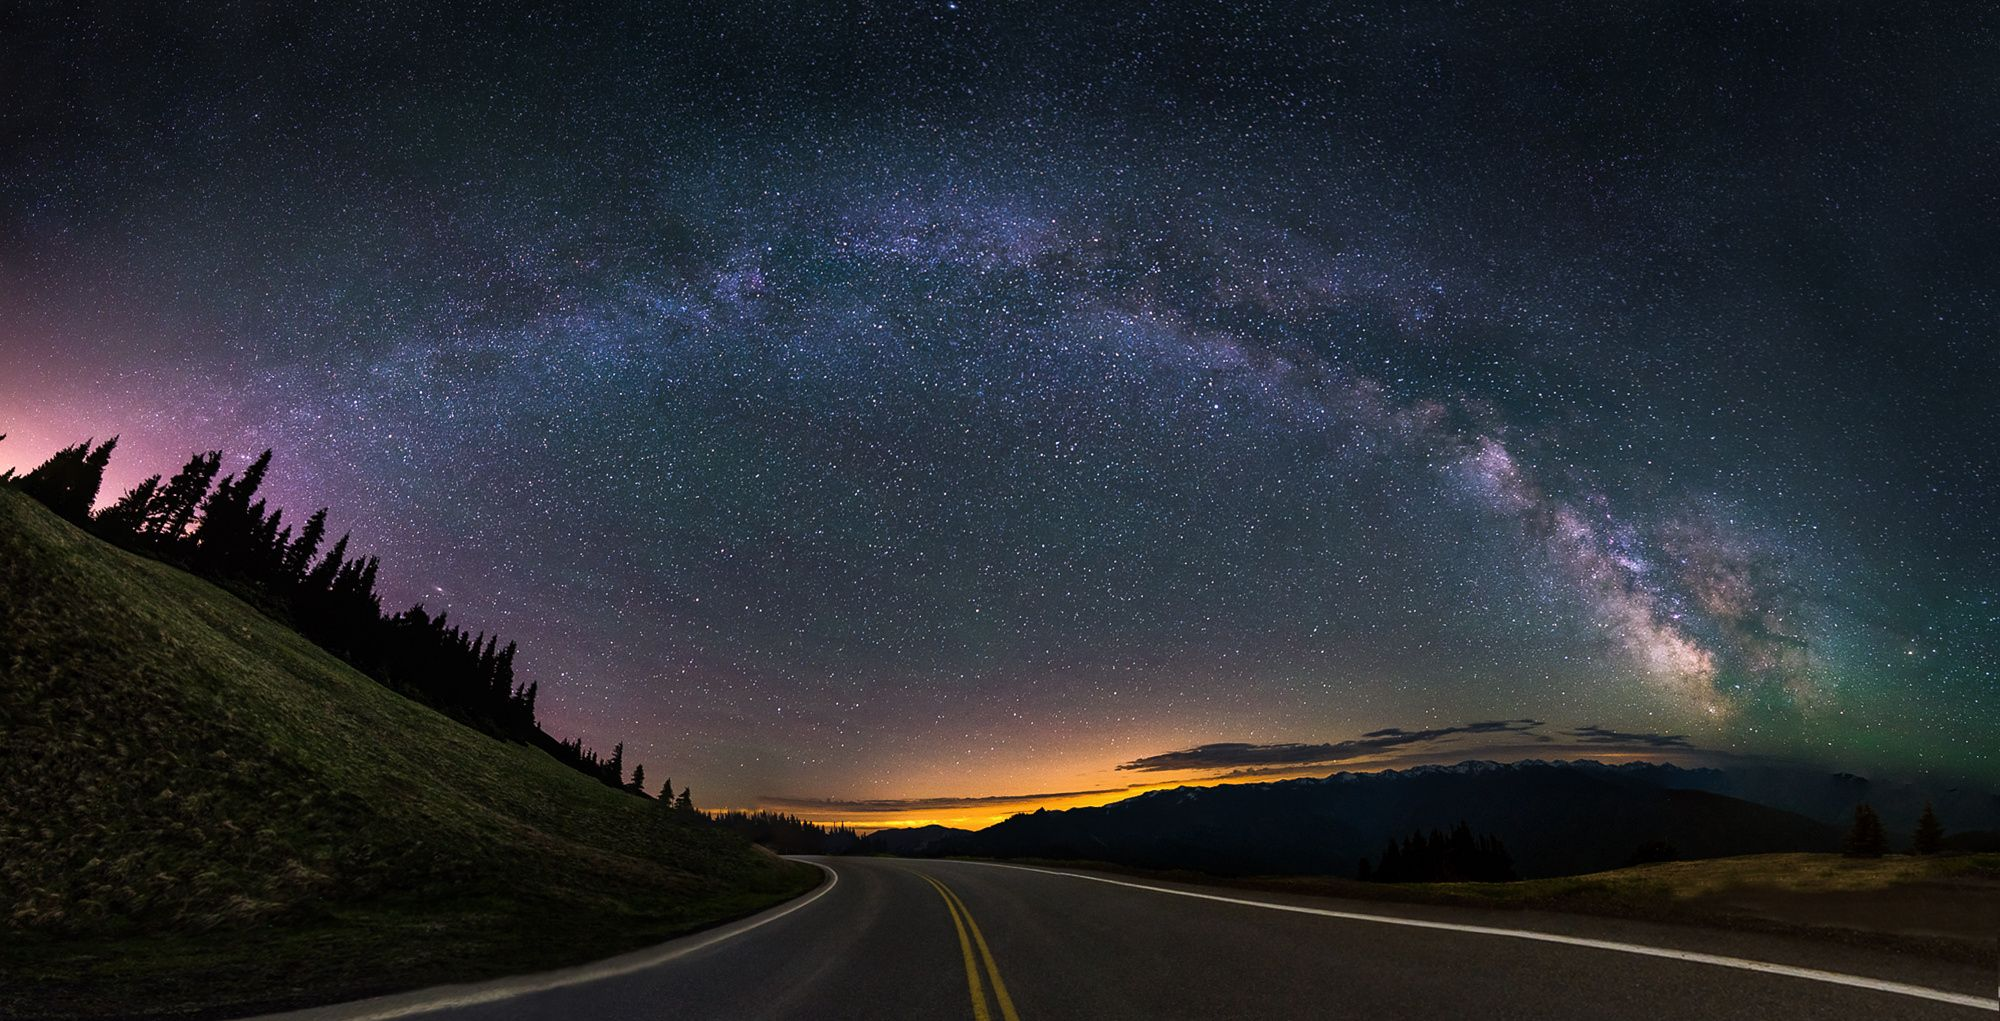 Over the Ridge - My first attempt at a milky way pano. Hurricane Ridge, WA…